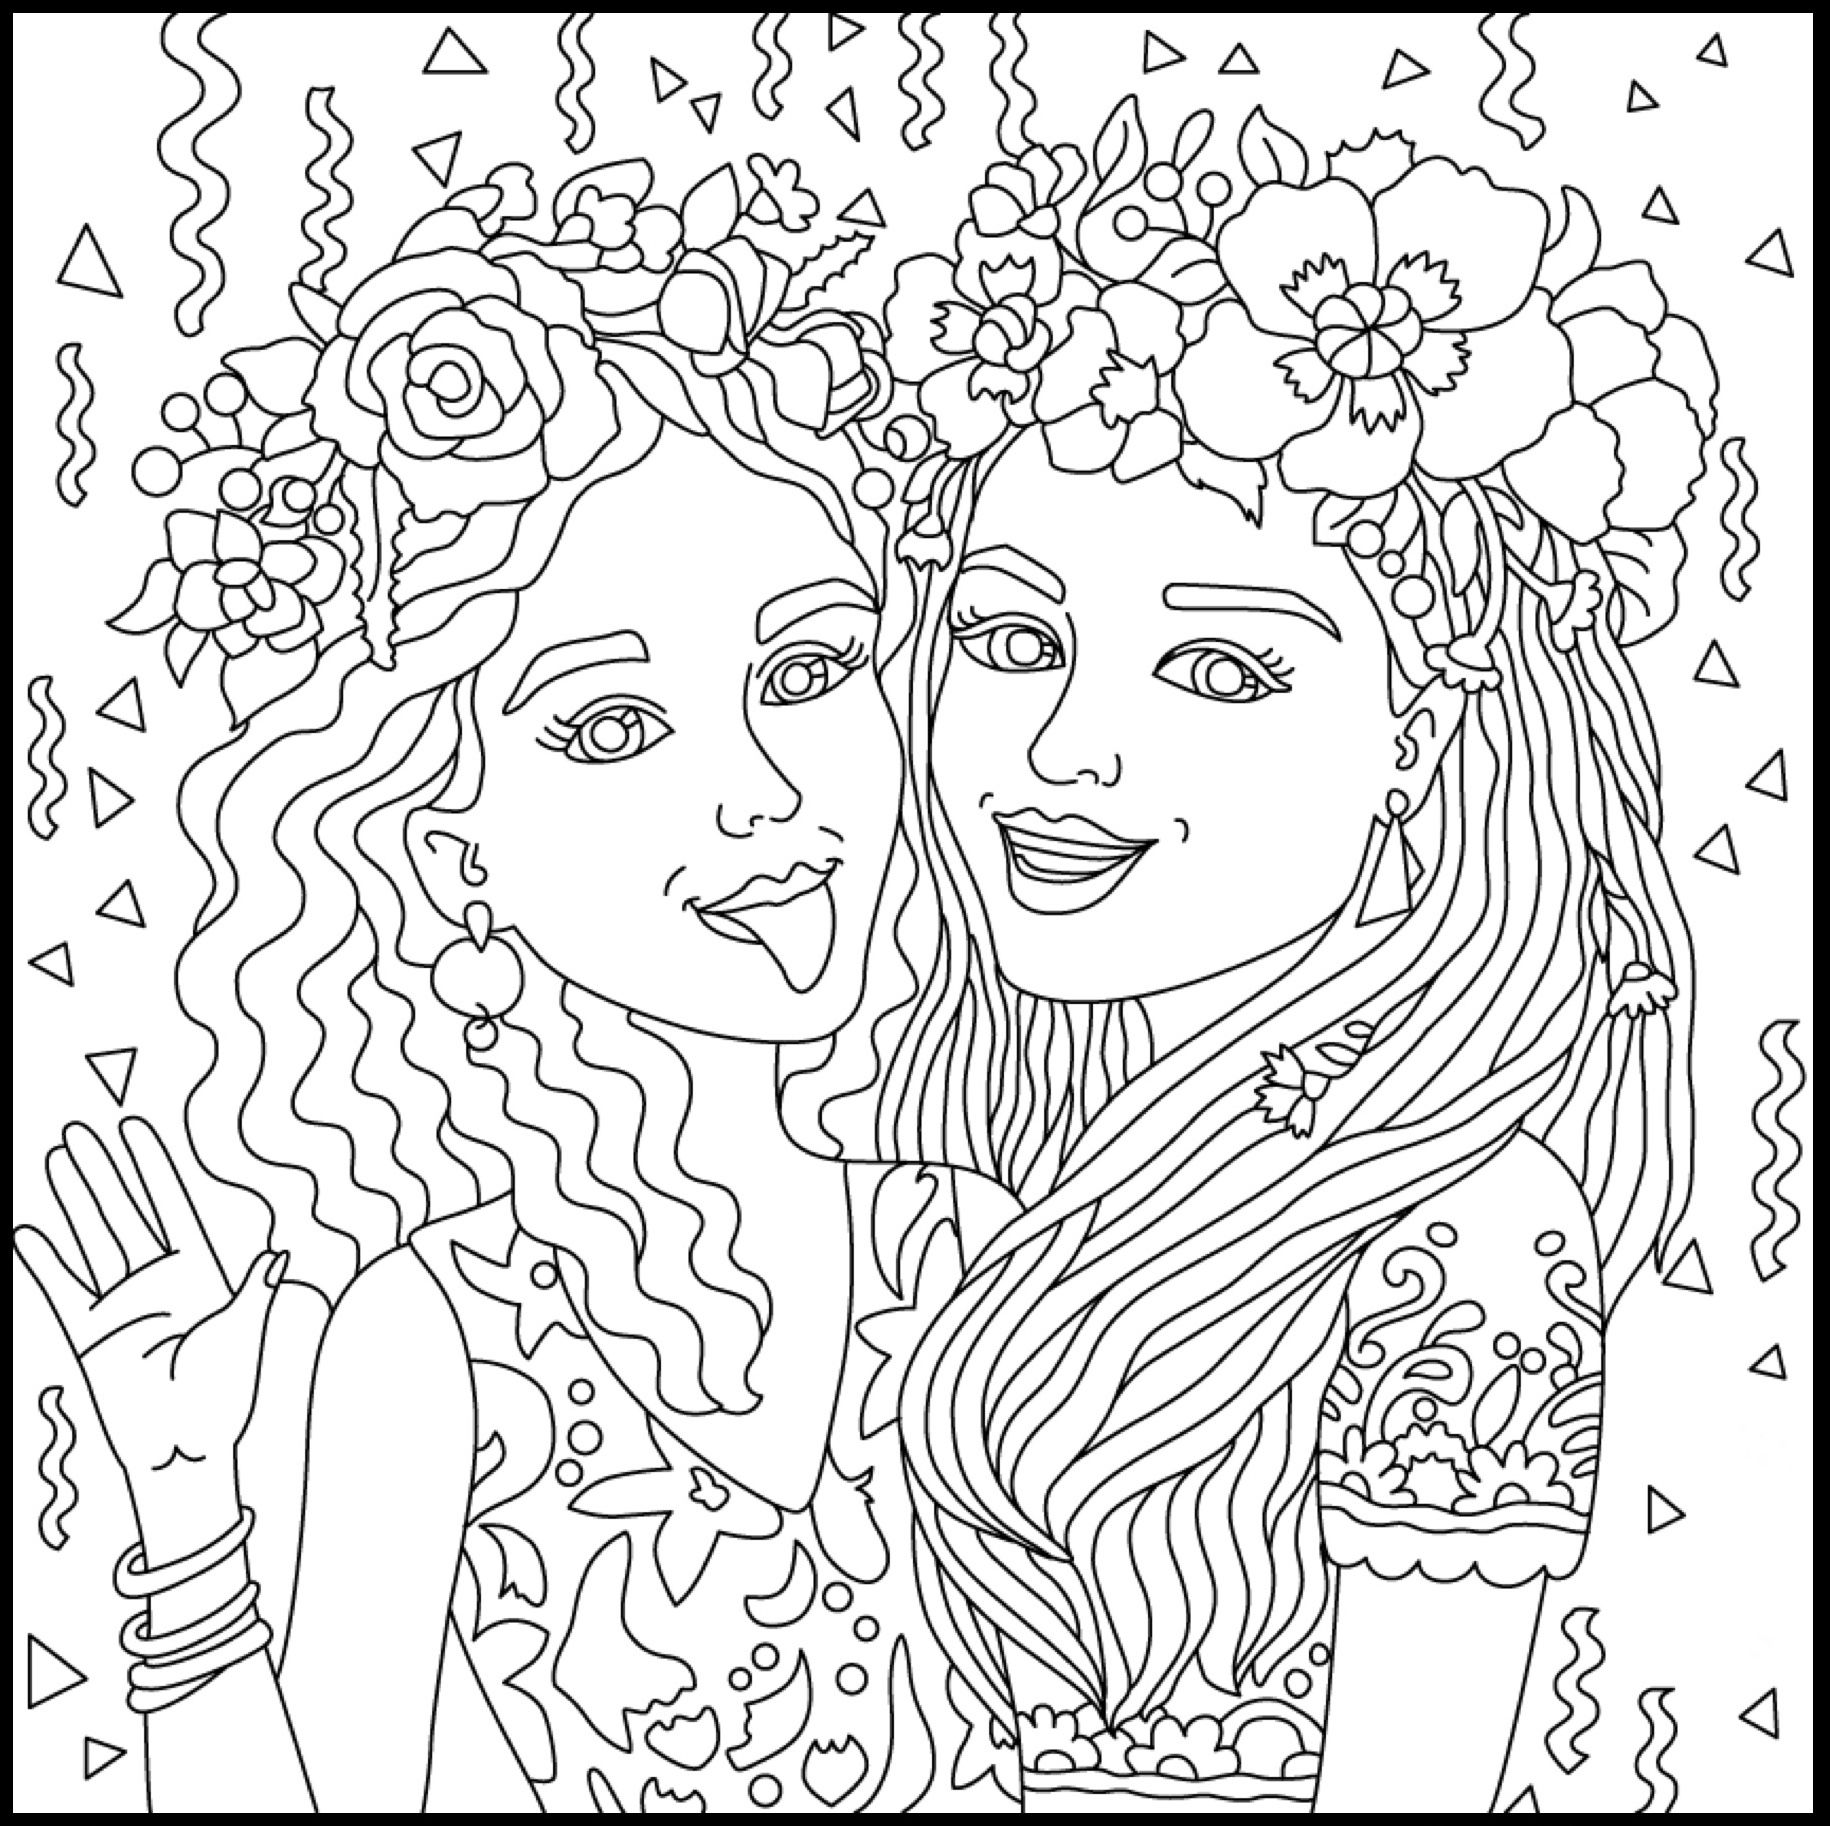 Pin by Sunny D on Color Me please Coloring pages for